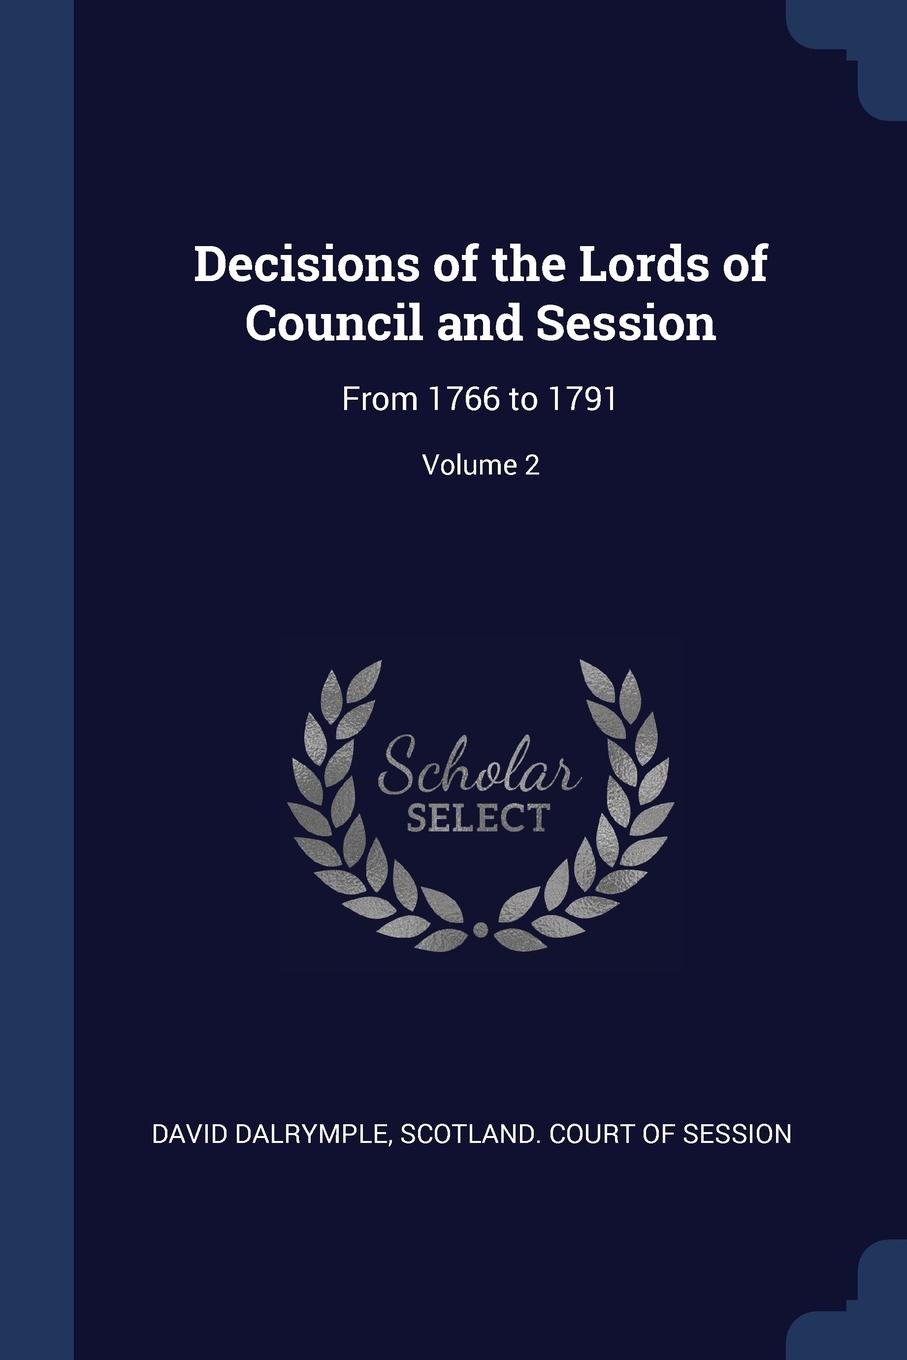 David Dalrymple Decisions of the Lords Council and Session. From 1766 to 1791; Volume 2